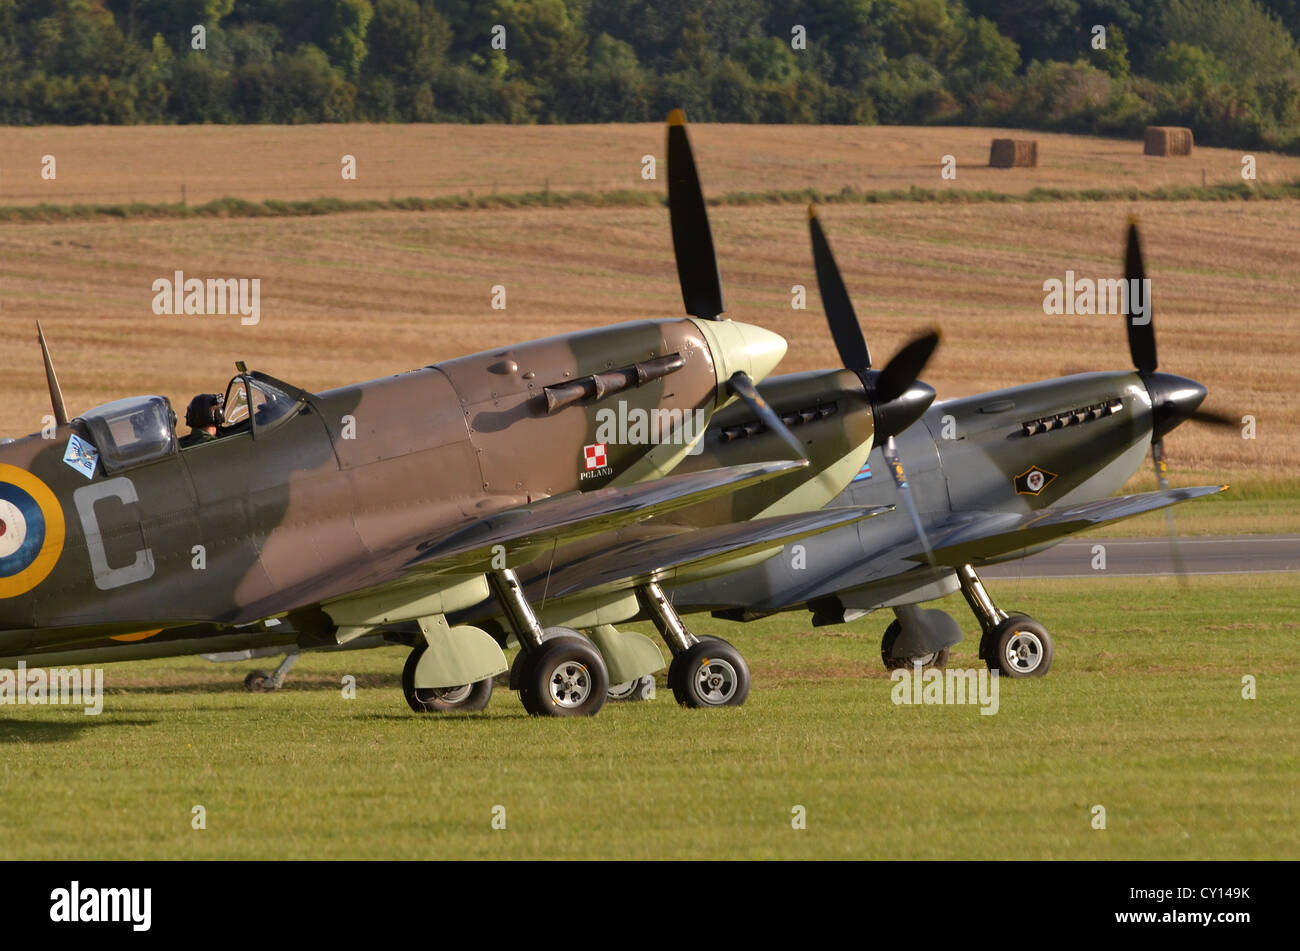 Supermarine Spitfire plane trio in RAF colours ready for take-off, Duxford Airshow, UK. L to R: Spitfire Mk. Vb, - Stock Image